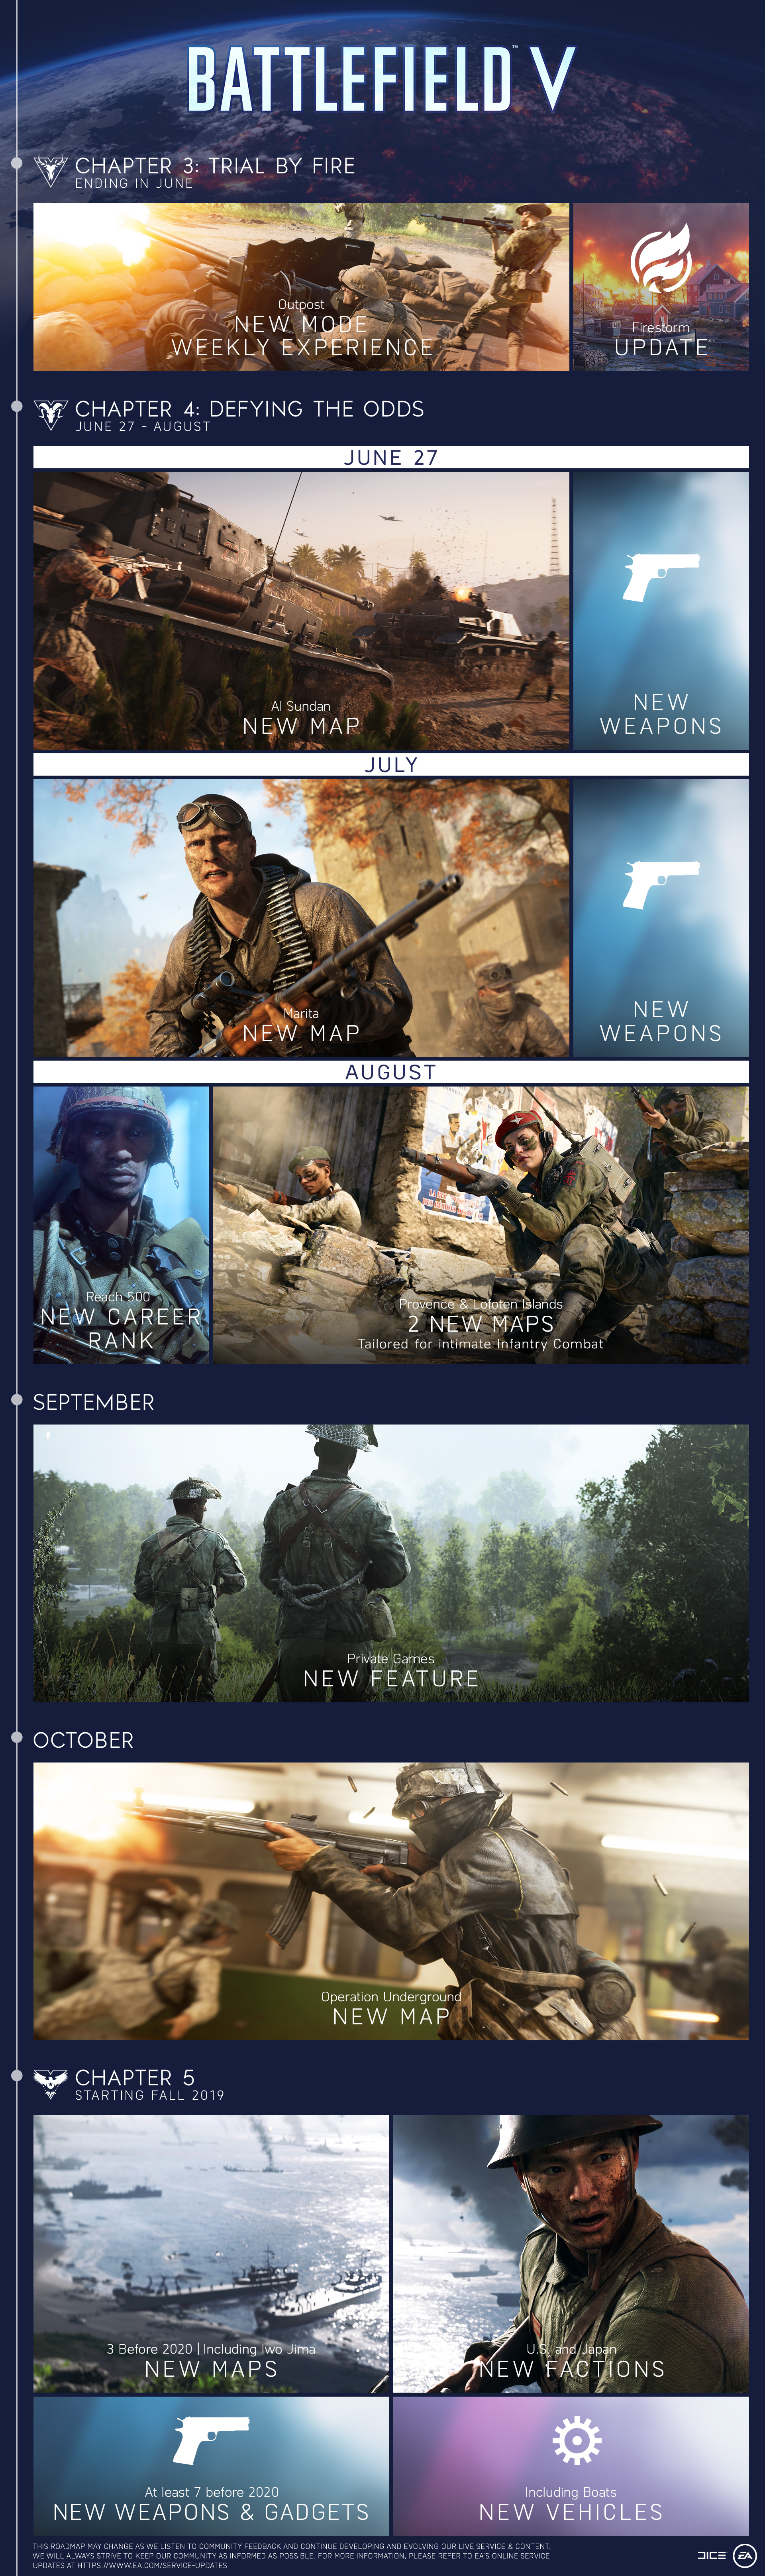 Battlefield V 2019 Roadmap: Every Chapter Brings a New